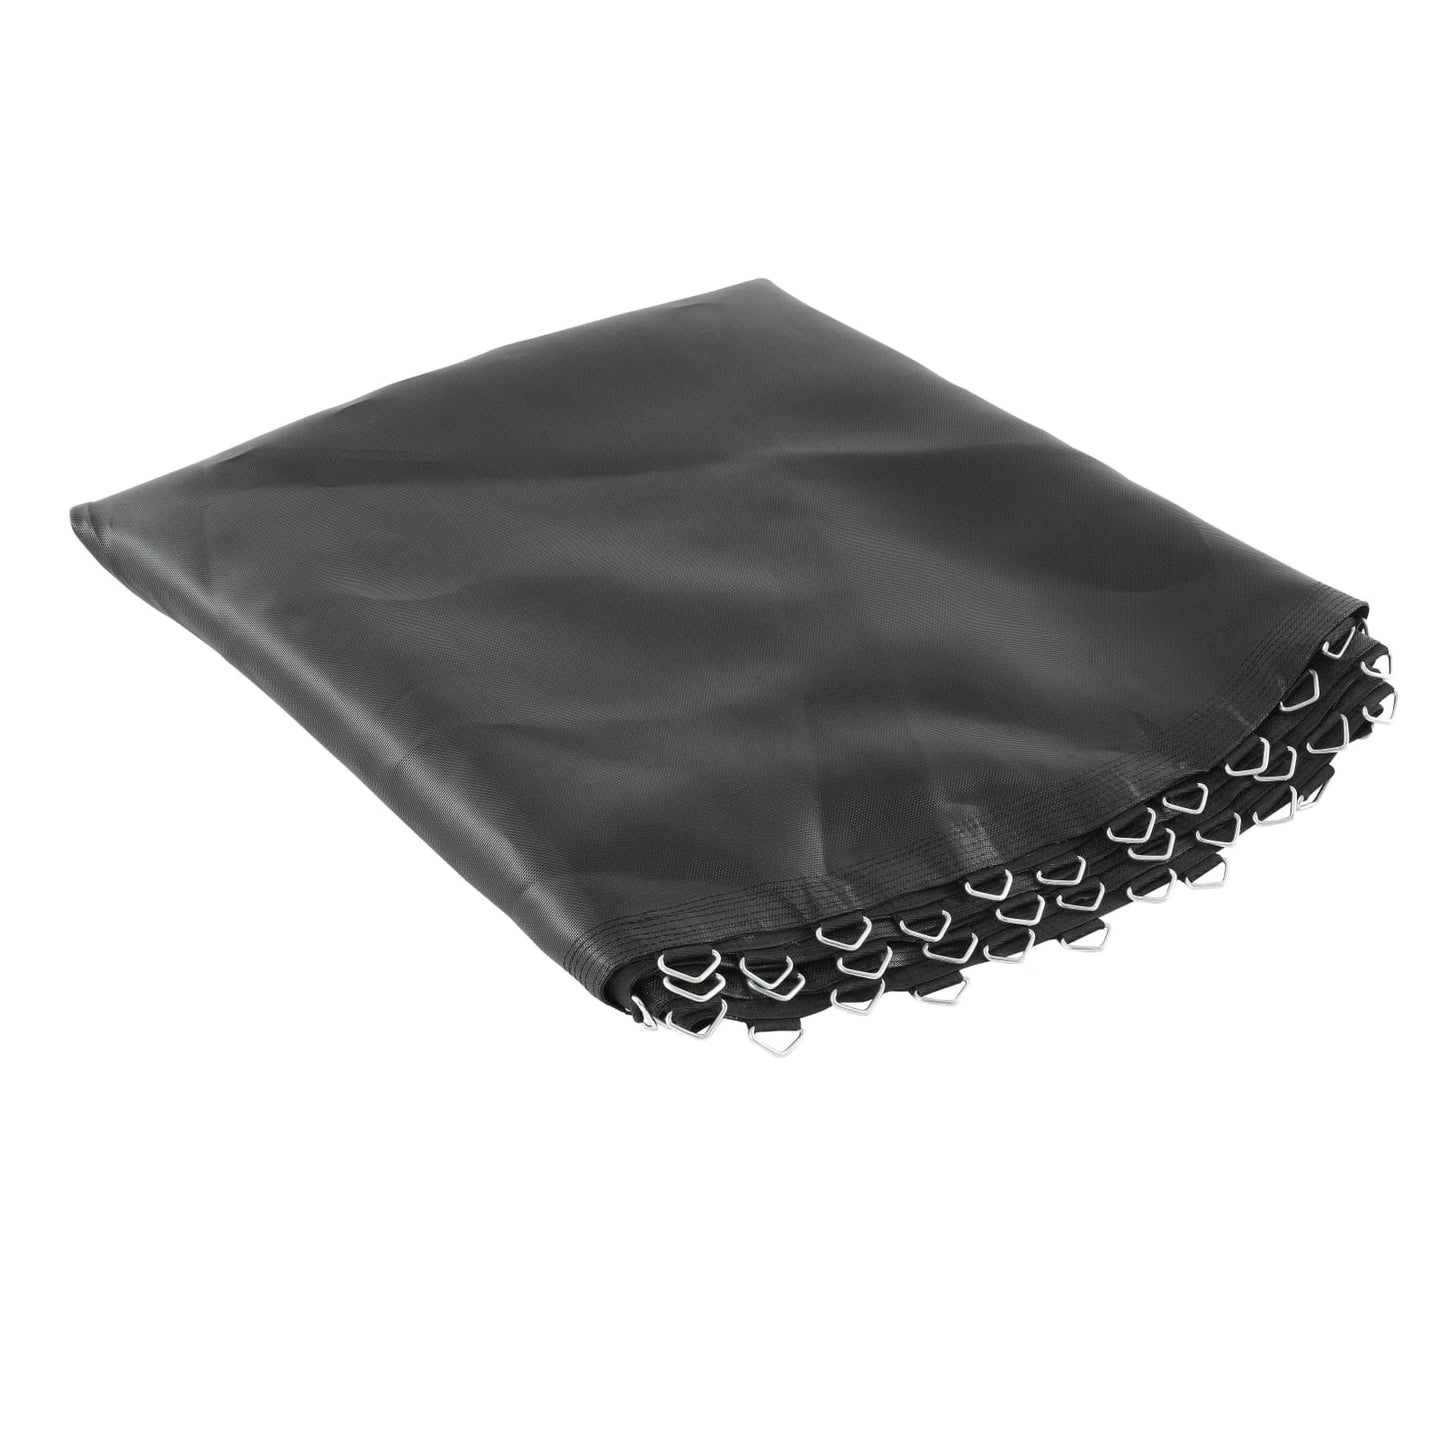 Upper Bounce Trampoline Replacement Jumping Mat Fits For 16 X 14 Ft. Oval Frames W/ 96 V-Rings Using 5.5 Springs - Trampoline Replacements